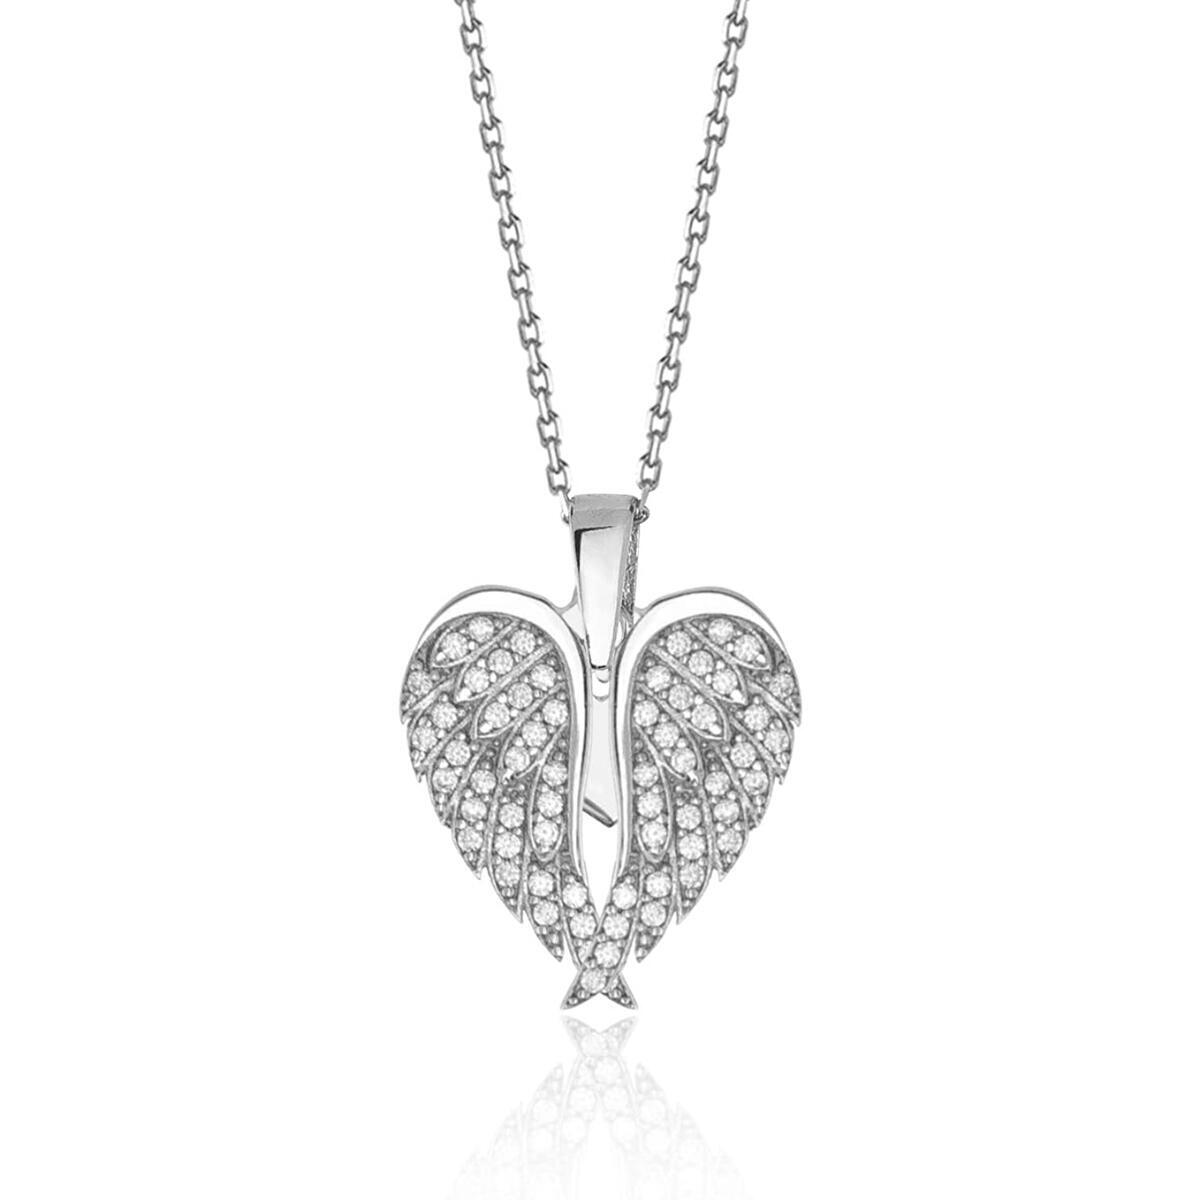 925 Sterling Silver Angel Wing Necklaces for Women,Heart Necklaces for Women, Cubic Zirconia Angel Wing Heart Pendant Charm Necklace for Women, Asthetic Jewellery for women